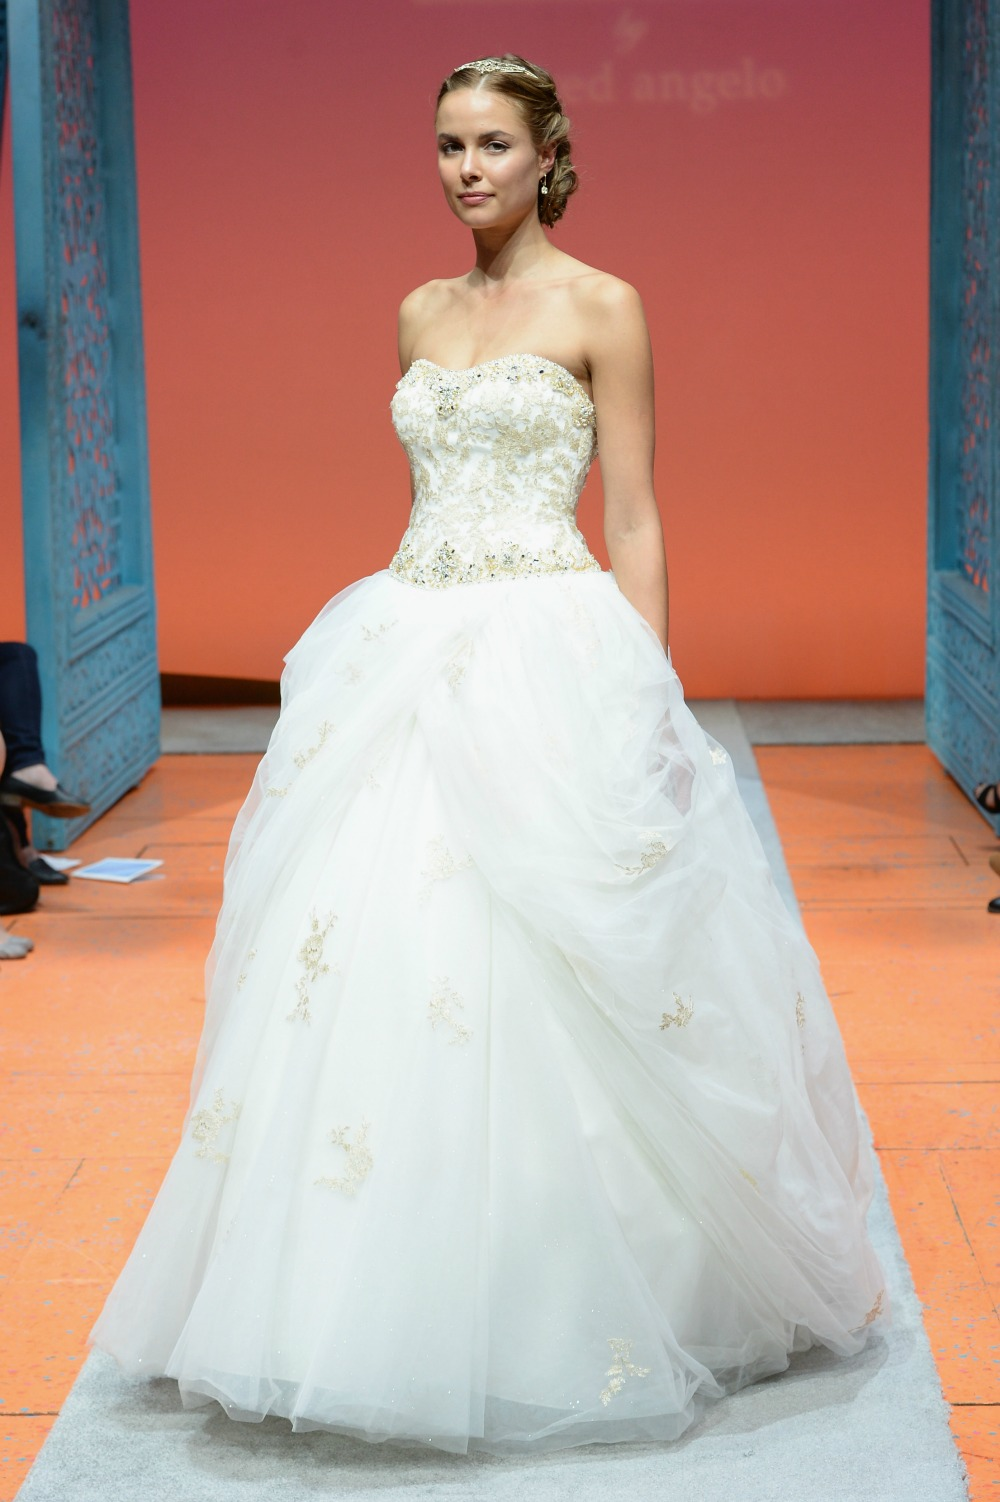 The 2016 disney fairy tale weddings collection by alfred for Angelo alfred wedding dresses